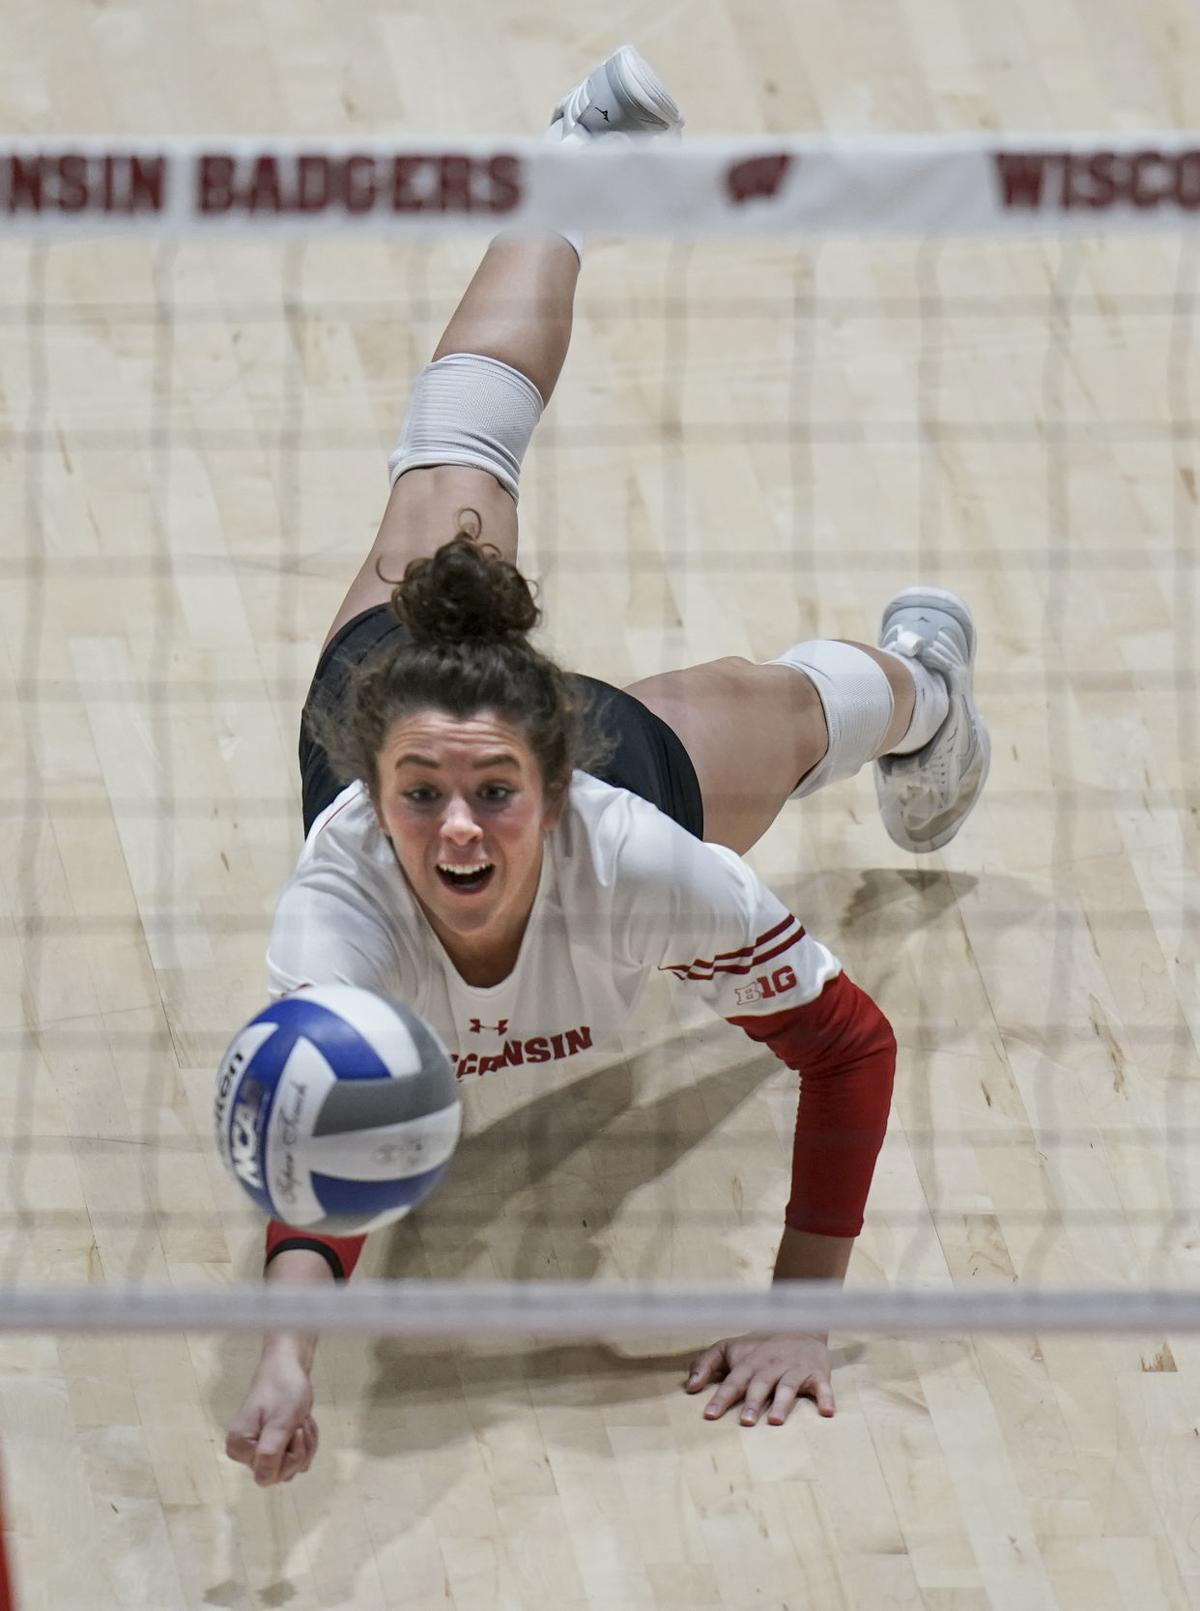 volleyball jump page photo 12-7